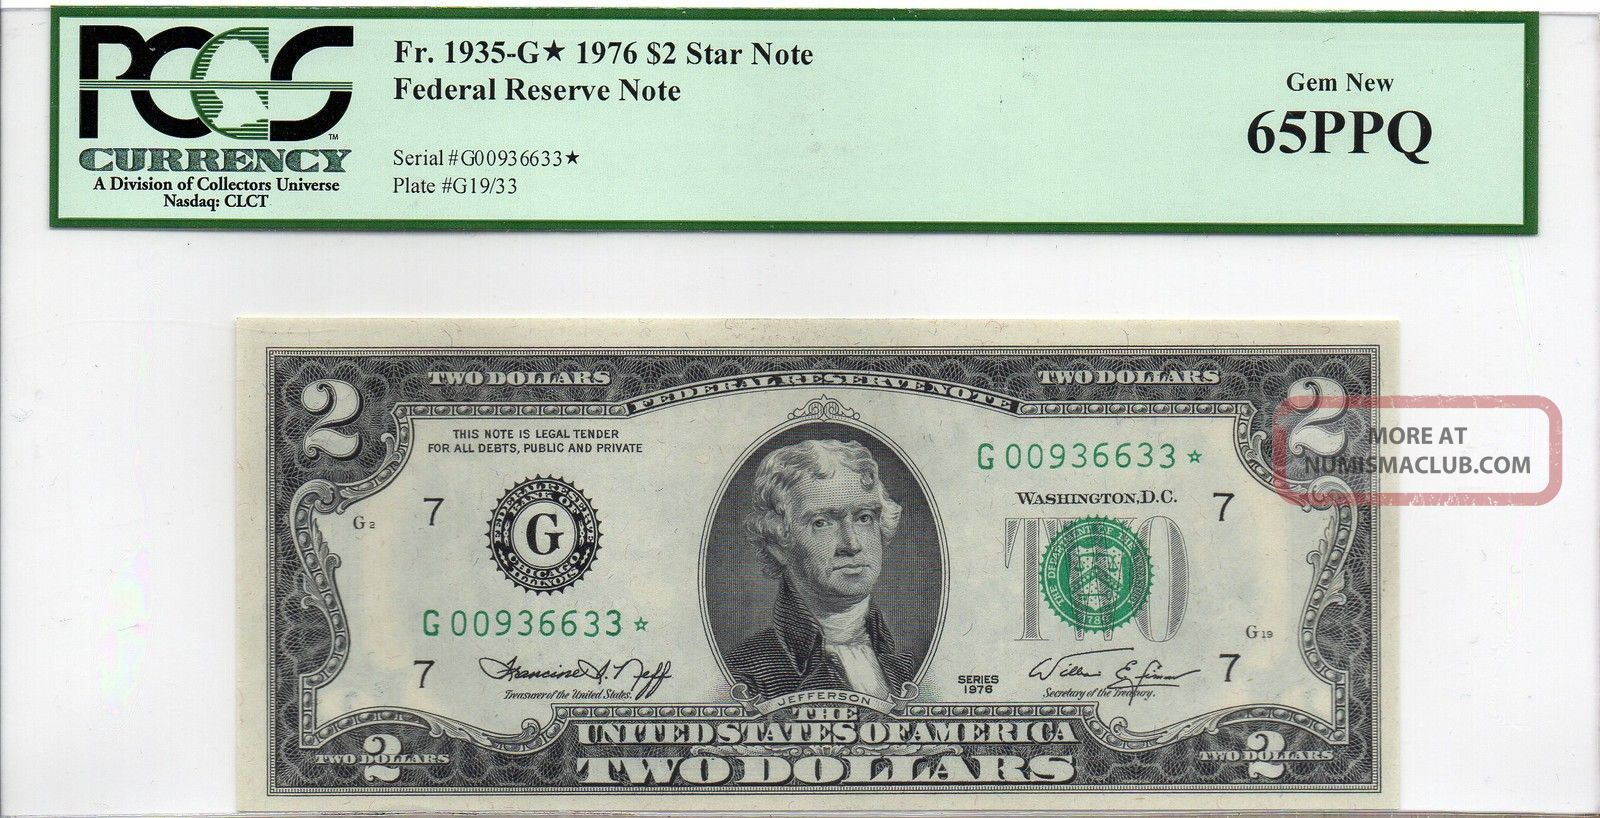 Federal Reserve $2 Series 1976 G Chicago Star Note Pcgs 65 Ppq Small Size Notes photo